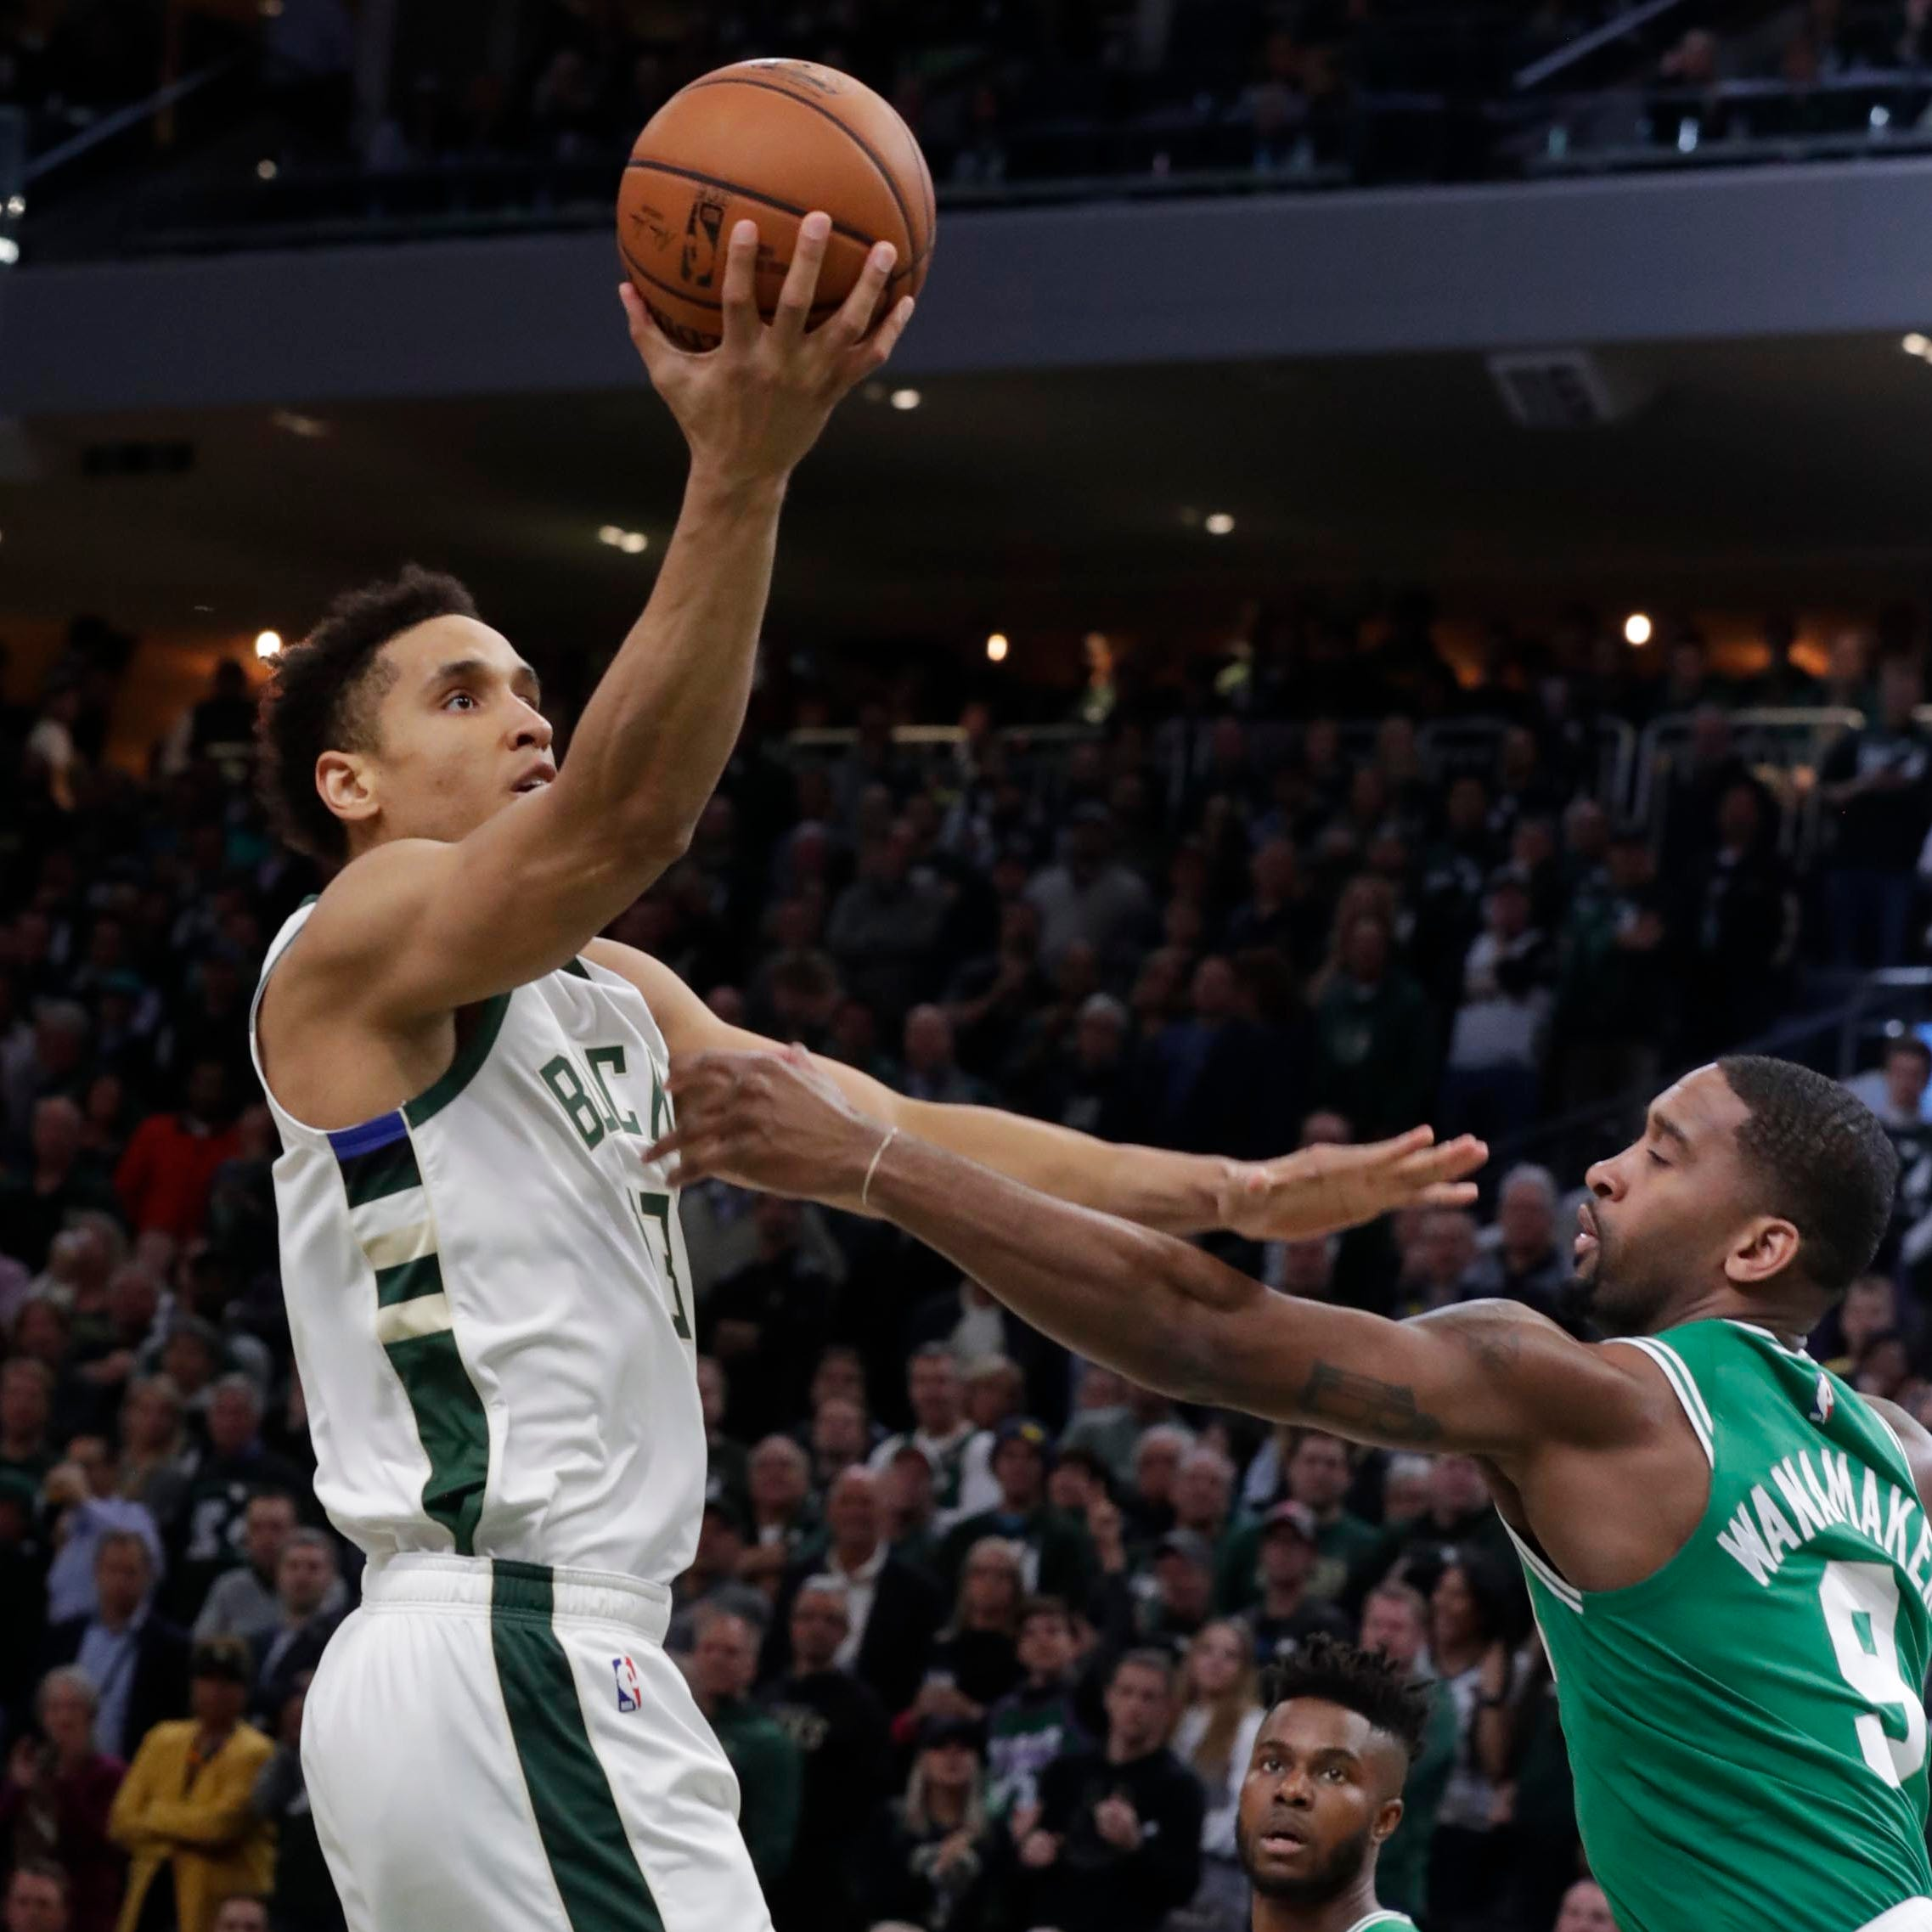 A week layoff gives Malcolm Brogdon more time to recover, but he may stick with the 'bench mob'